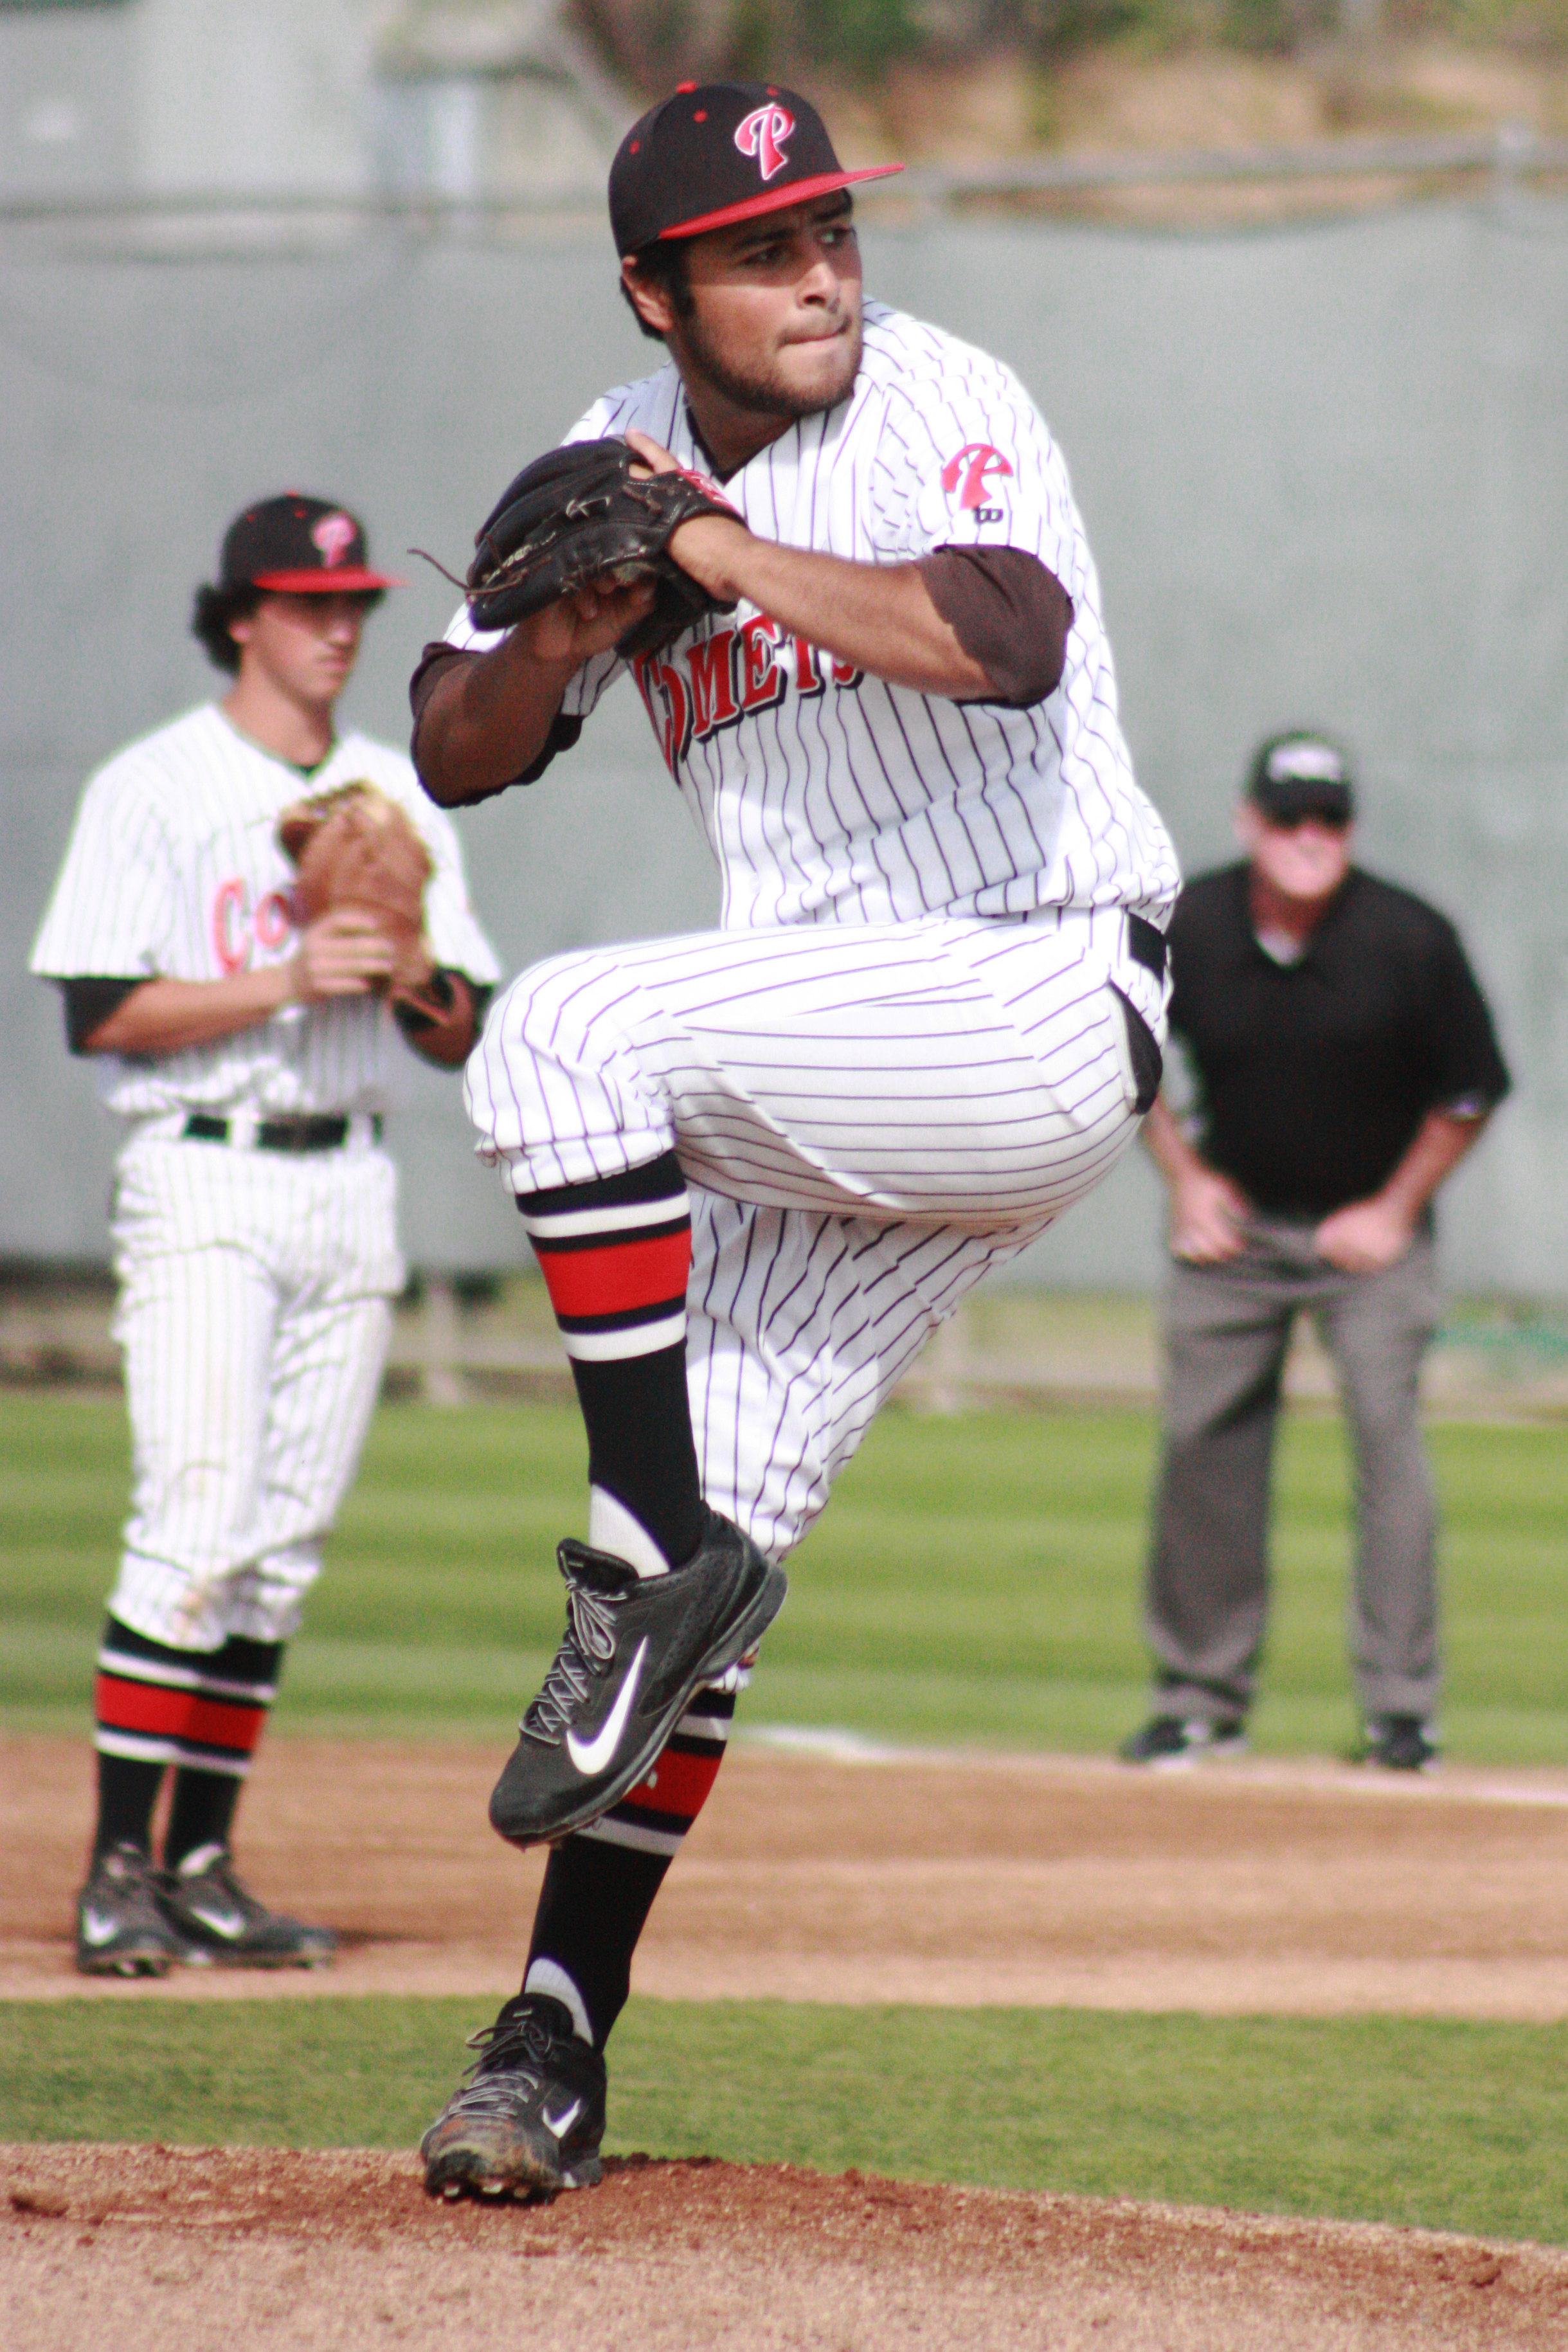 Starting pitcher Emilio Esquibel (#9) throws a pitch to his opponent from College of the Desert on Feb. 20 at Myers Field. Esquibel earned his first win of the season, throwing 6 1/3rd shutout innings while striking out 4 and walking none in the Comets' 5-0 win over the Road Runners. Scott Colson/The Telescope